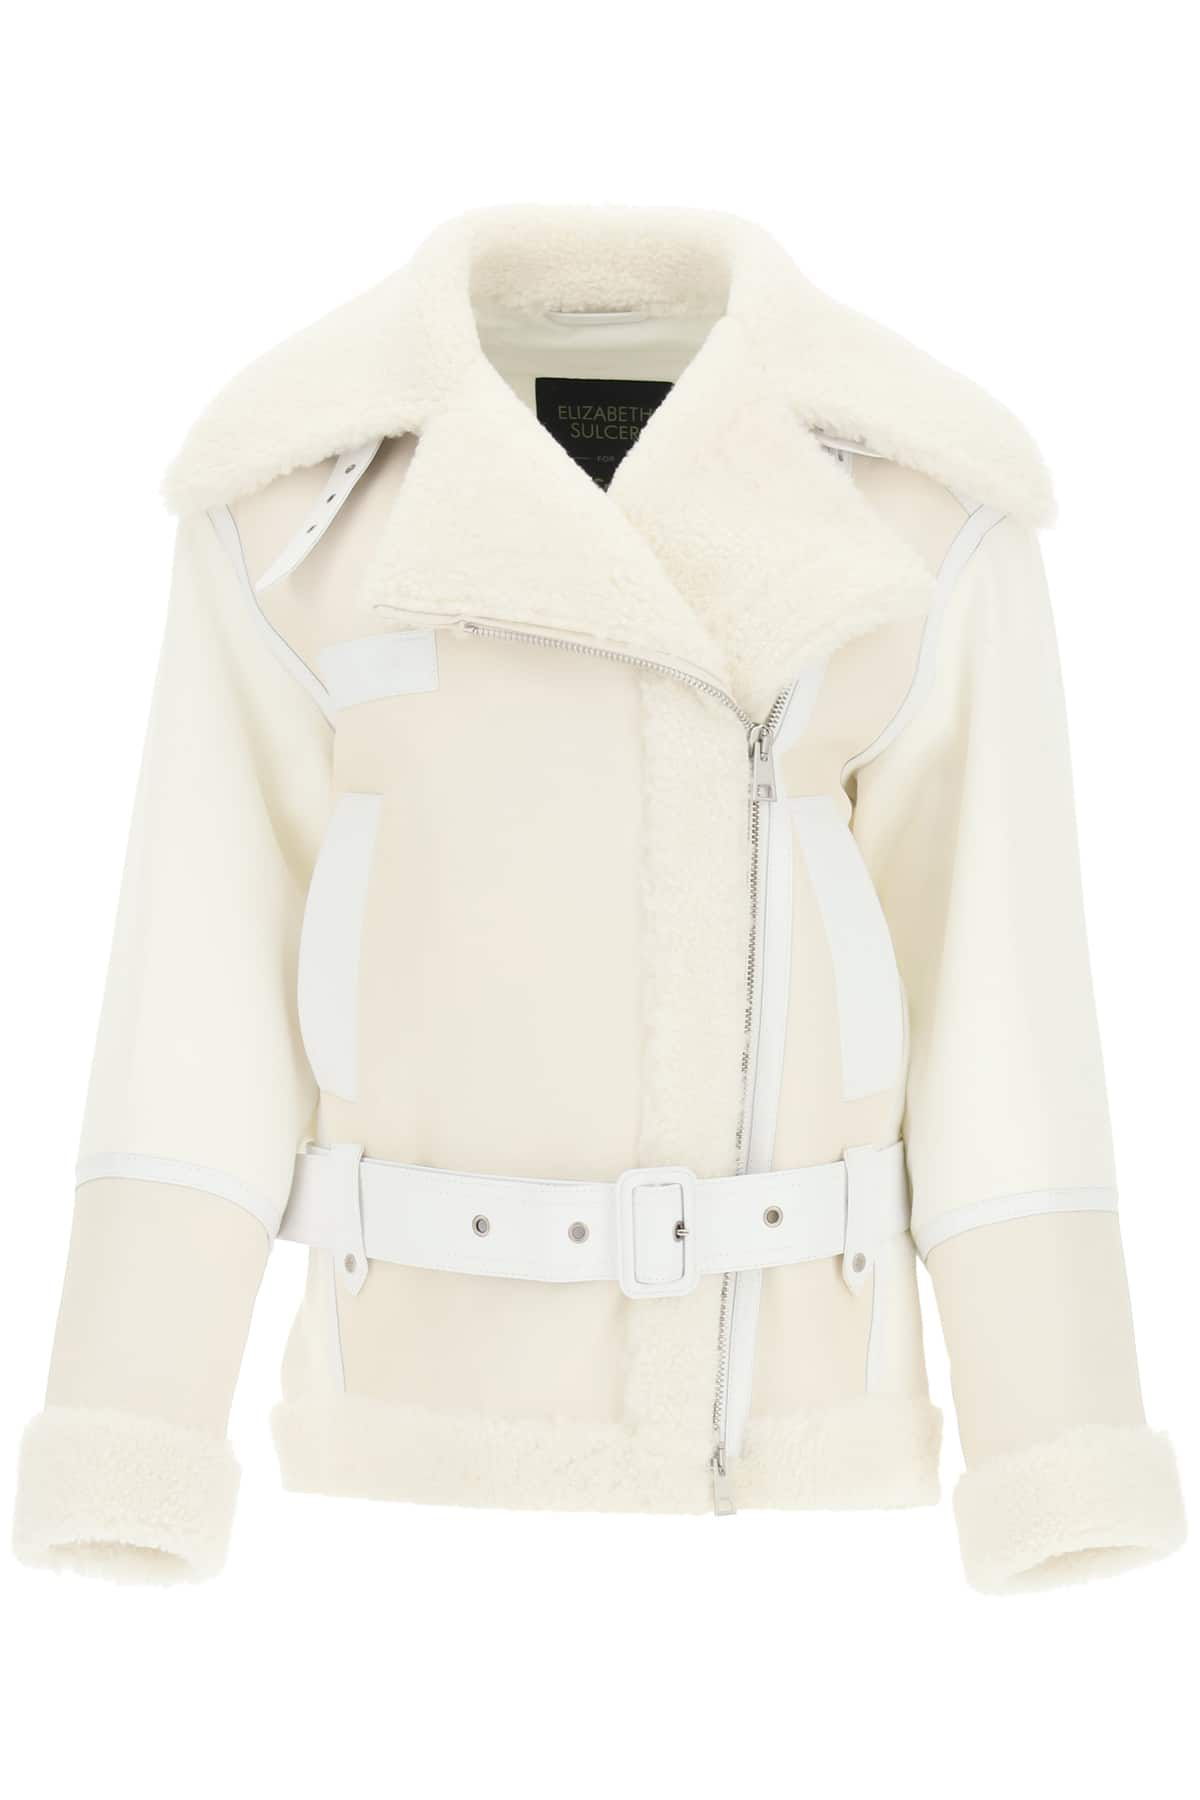 MR & MRS ITALY COTTON JACKET WITH NAPPA AND SHEARLING INSERTS S White Leather, Fur, Cotton